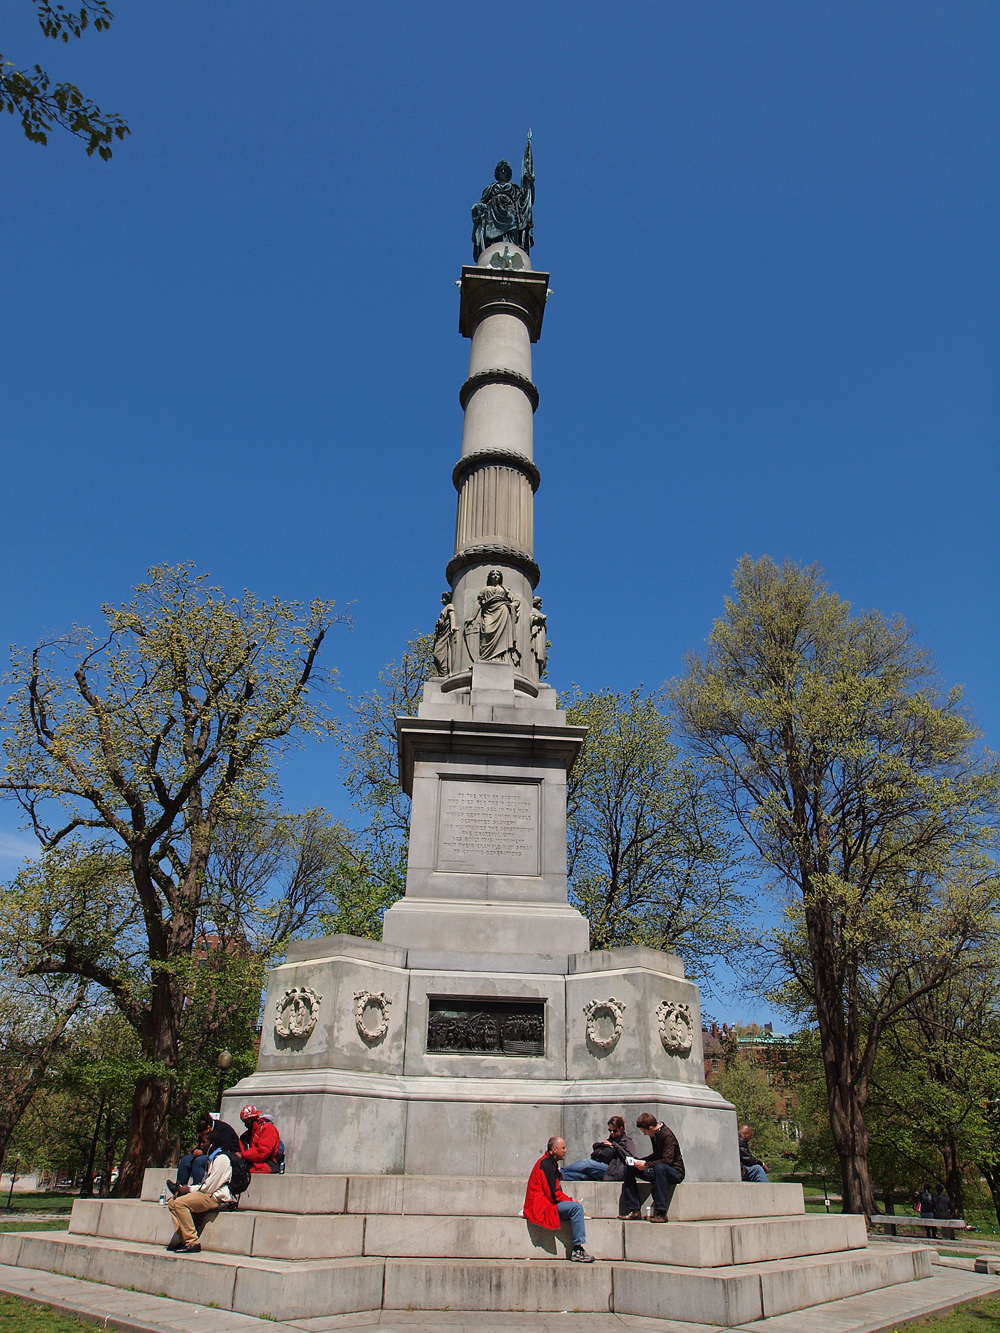 The Boston Common Soldier and Sailer monument.